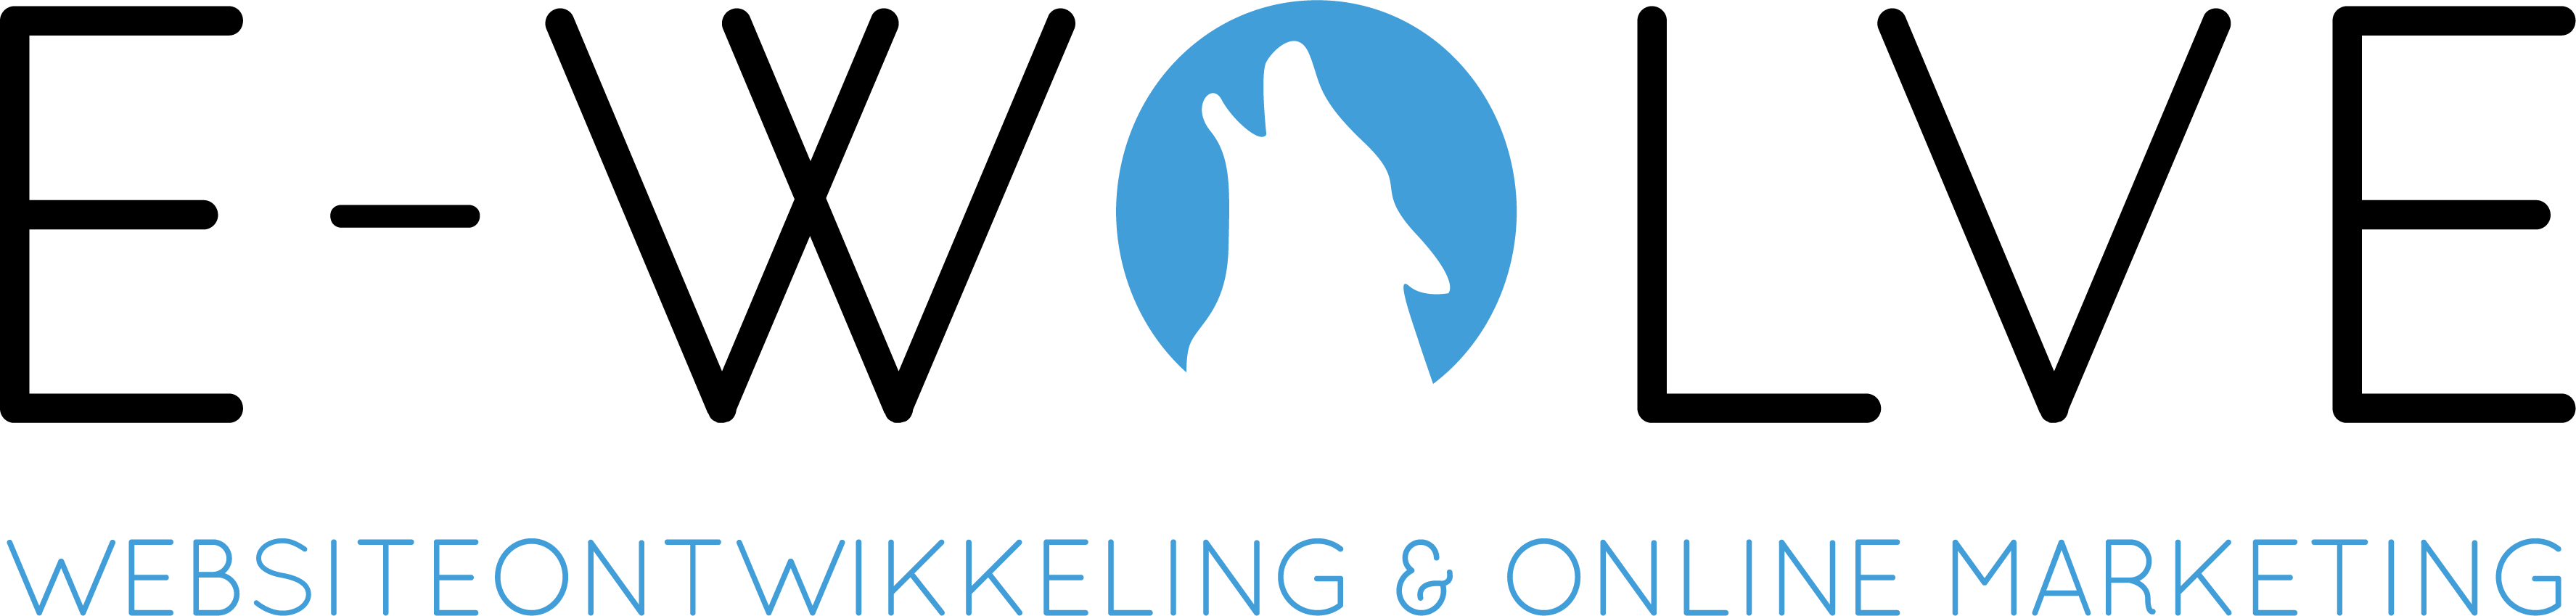 E-wolve | Websiteontwikkeling & Online Marketing